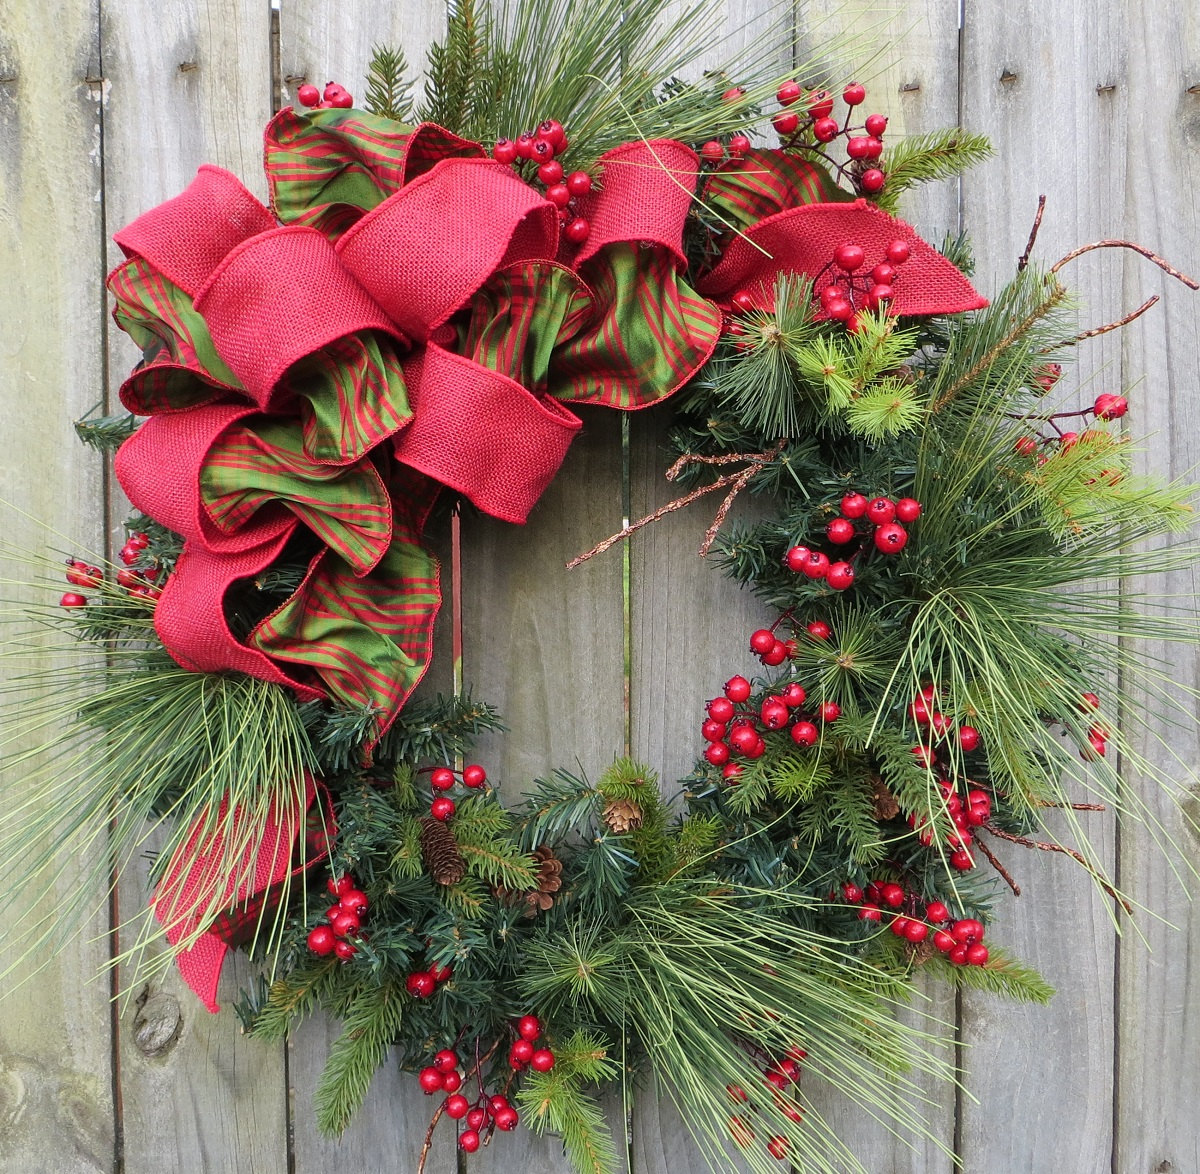 https://i0.wp.com/cdn.homedit.com/wp-content/uploads/2009/12/holiday-christmas-wreath-natual-winter.jpg